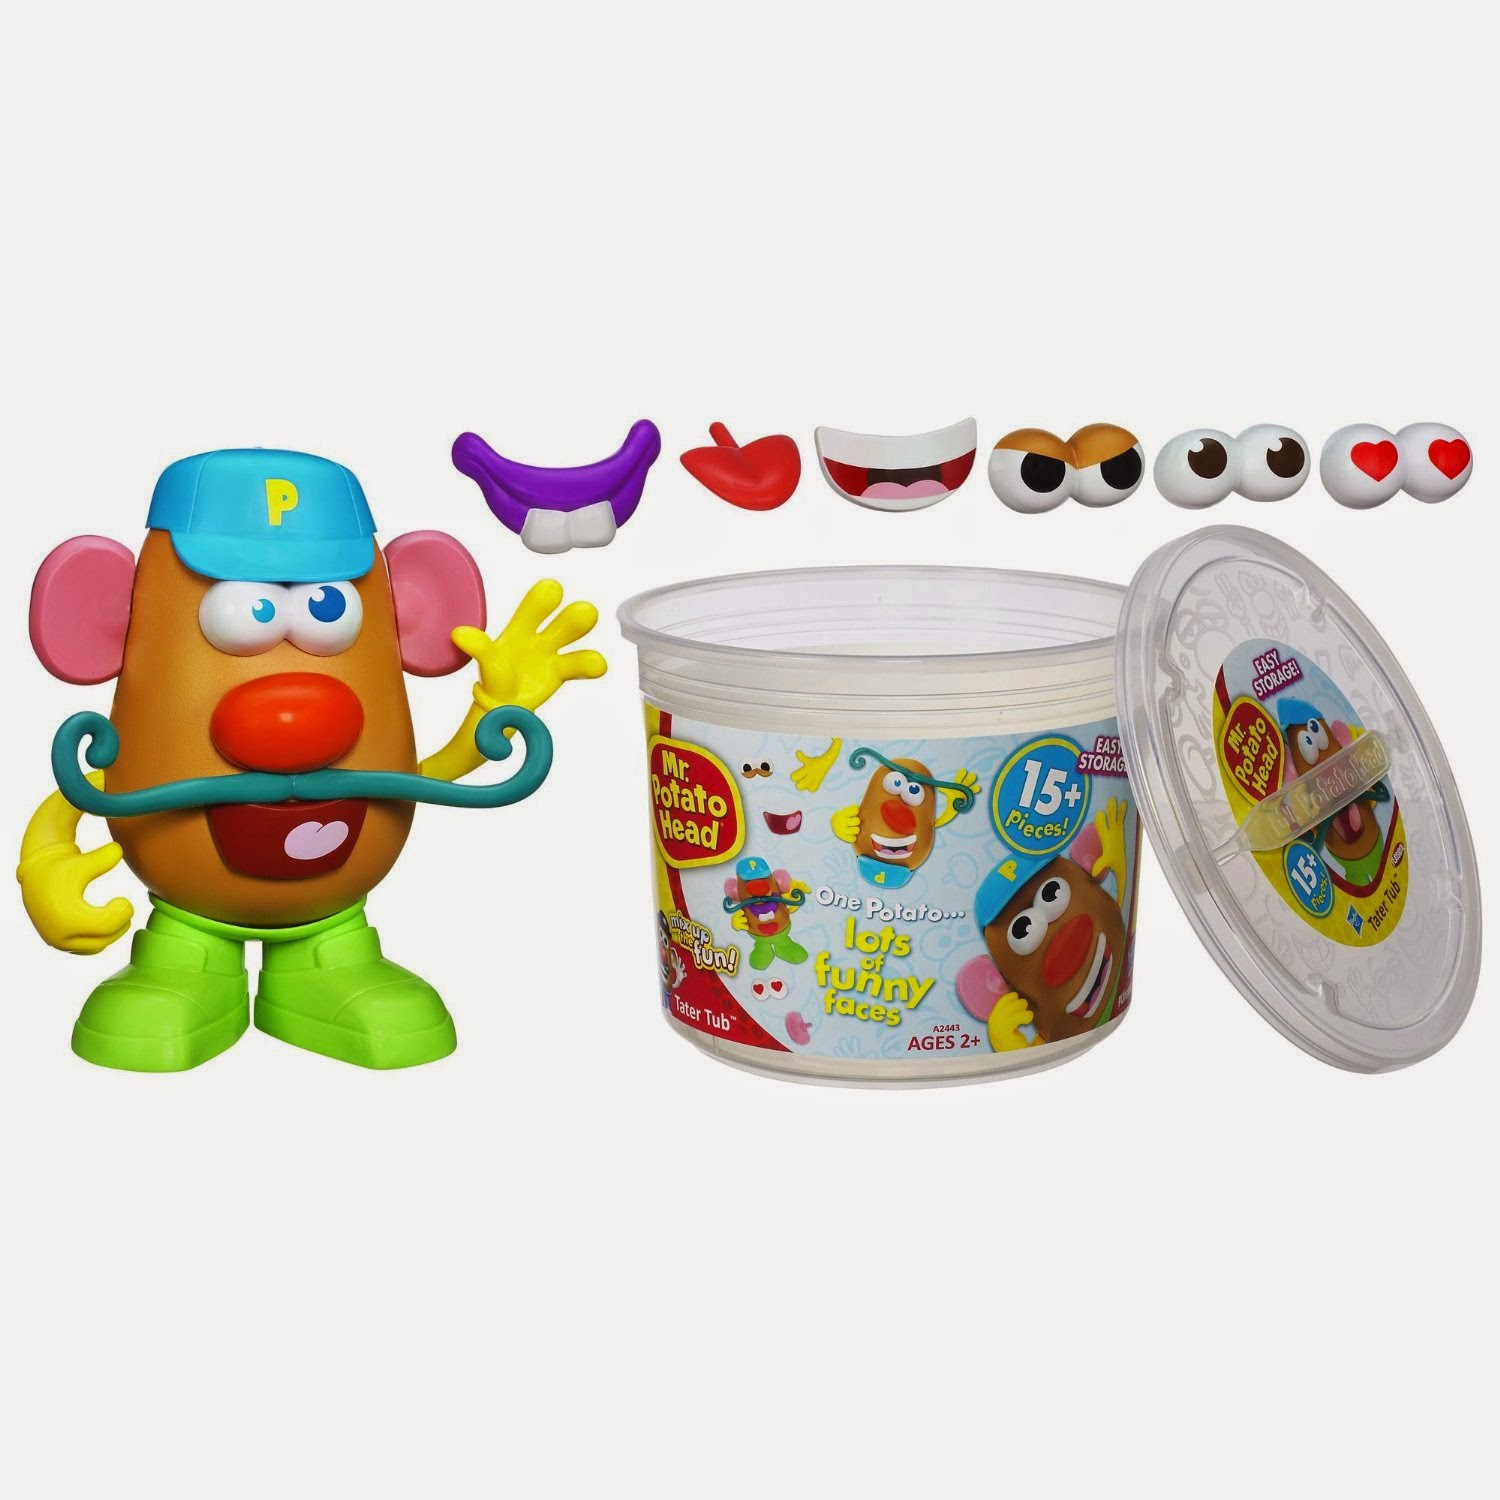 Potato Head Playskool Mr.Potato Head Tater Tub Set Best Toy